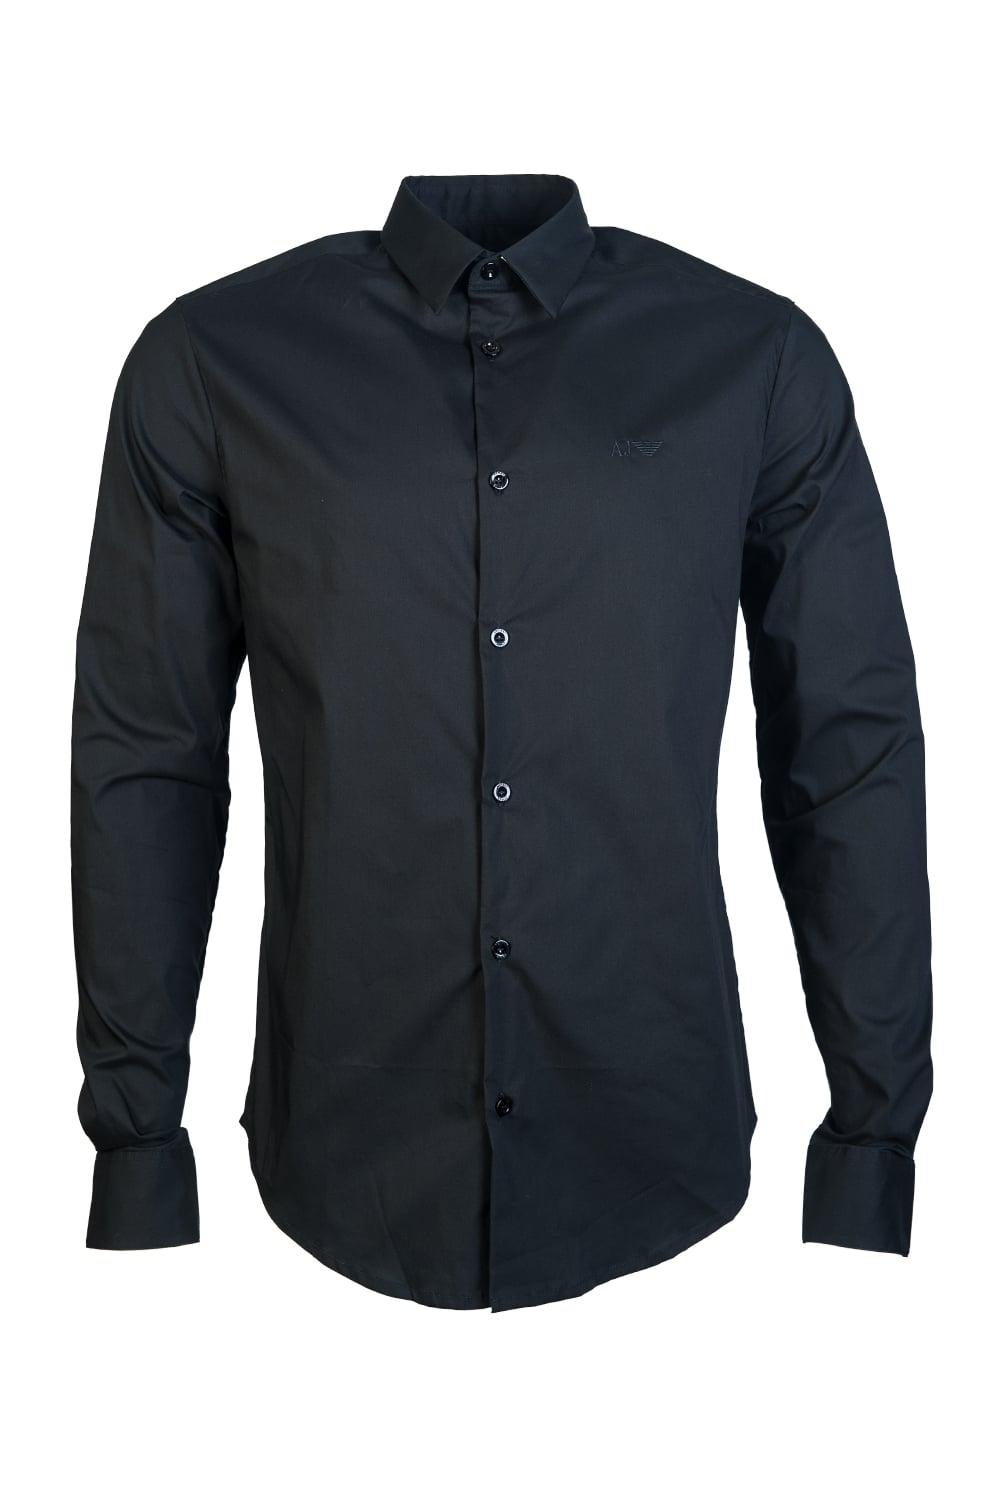 Armani jeans mens casual shirts 8n6c096n06z ebay for Mens jeans and dress shirt